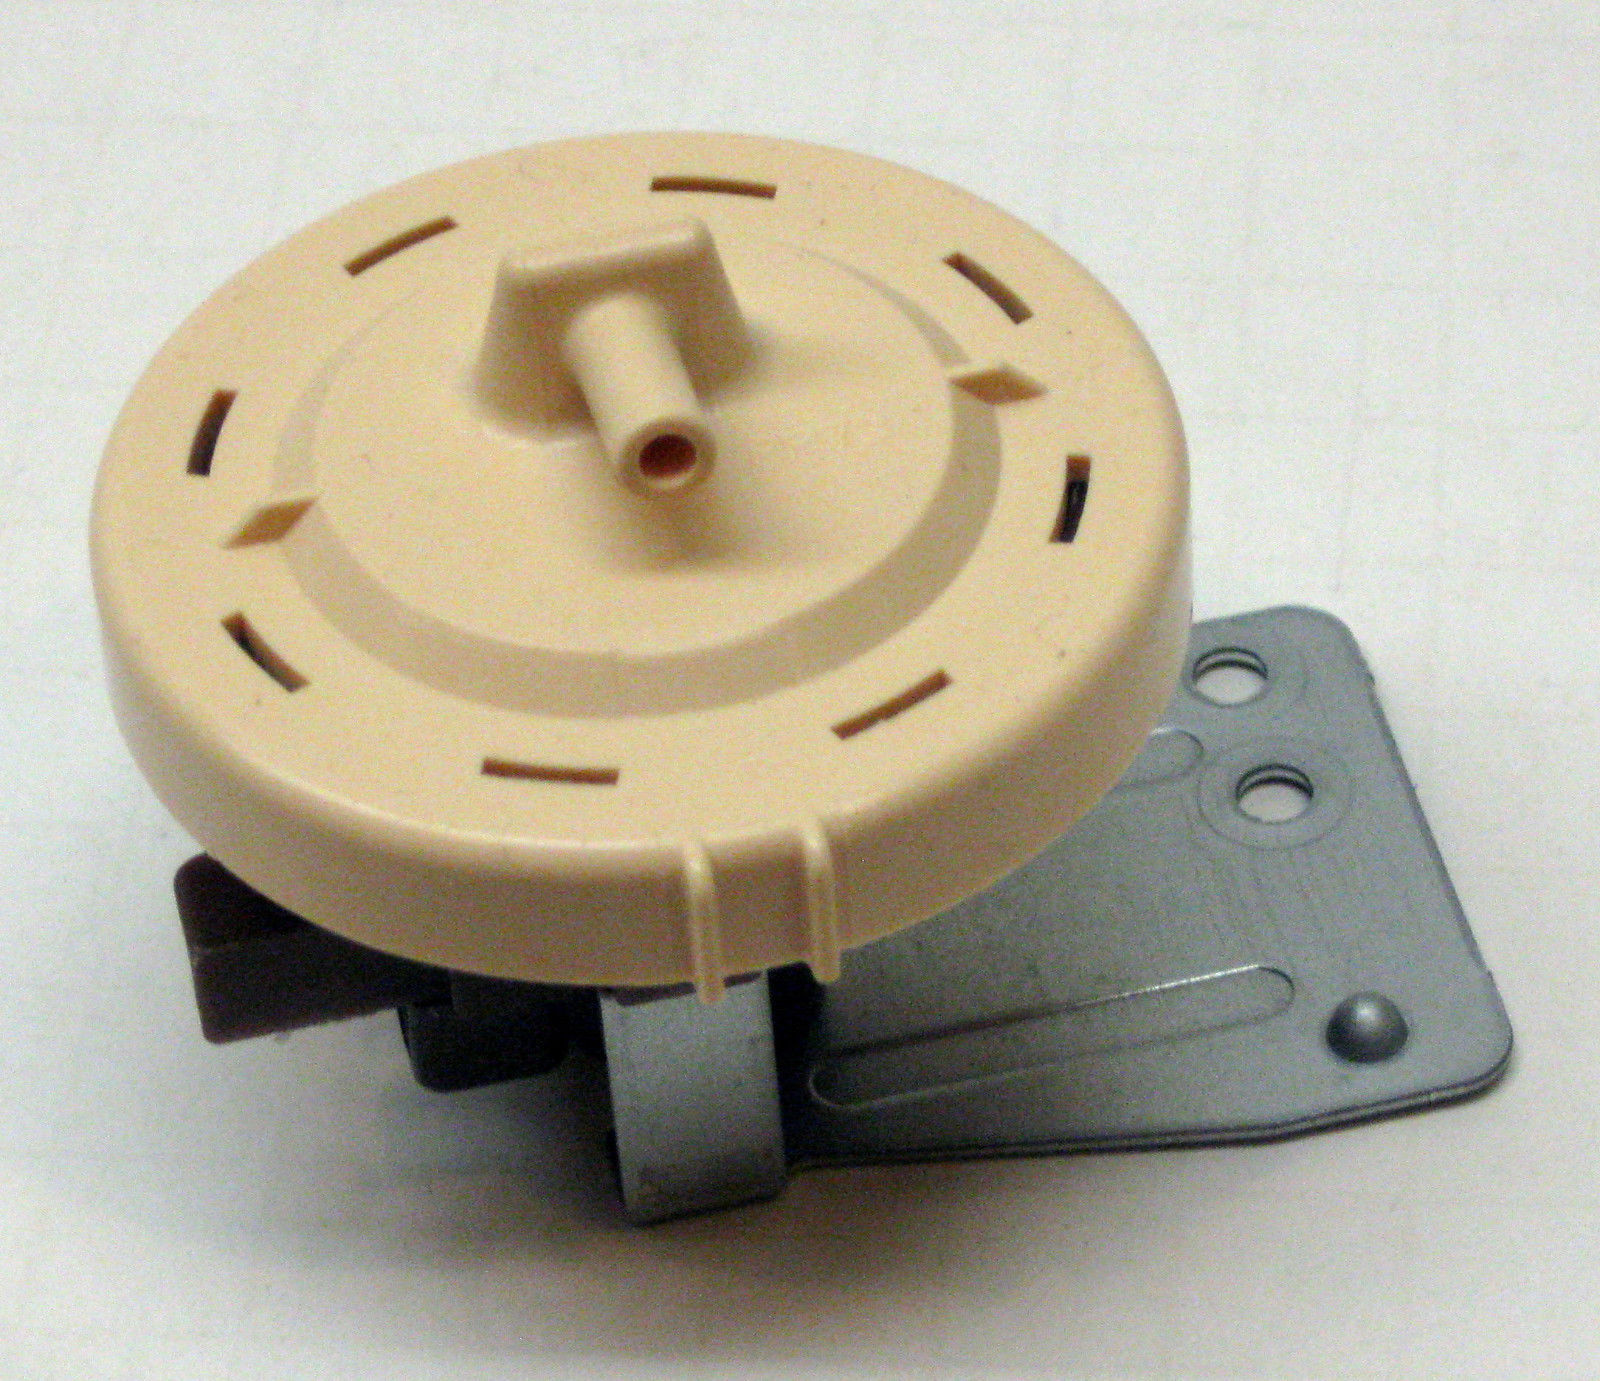 6601er1006e For Lg Washer Pressure Water Level Switch